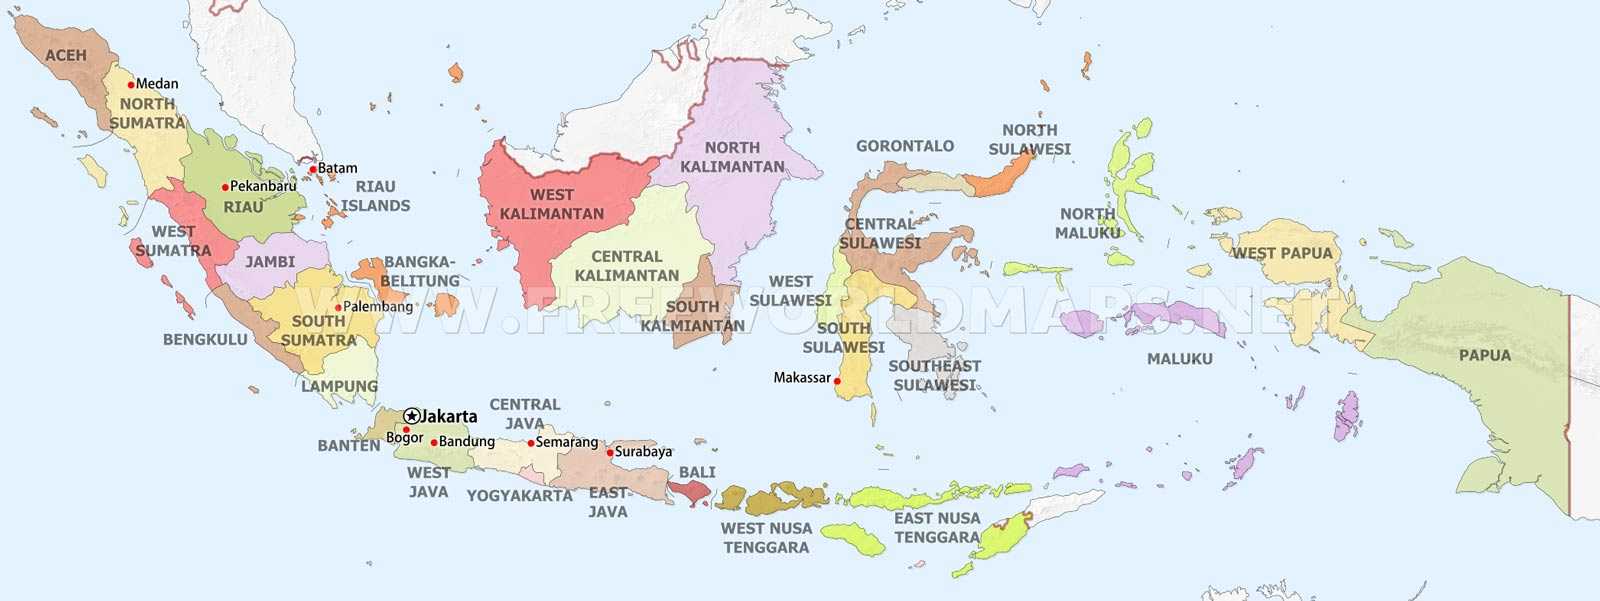 Indonesia Maps on vietnam map, bali map, australia map, indonesia map, mekong river map, mecca map, indochina map, malaya map, world map, india map, hawaii map, gujarat map, philippines map, madagascar map, moluccas map, singapore map, sumatra map, gobi desert map, jakarta map, china map,